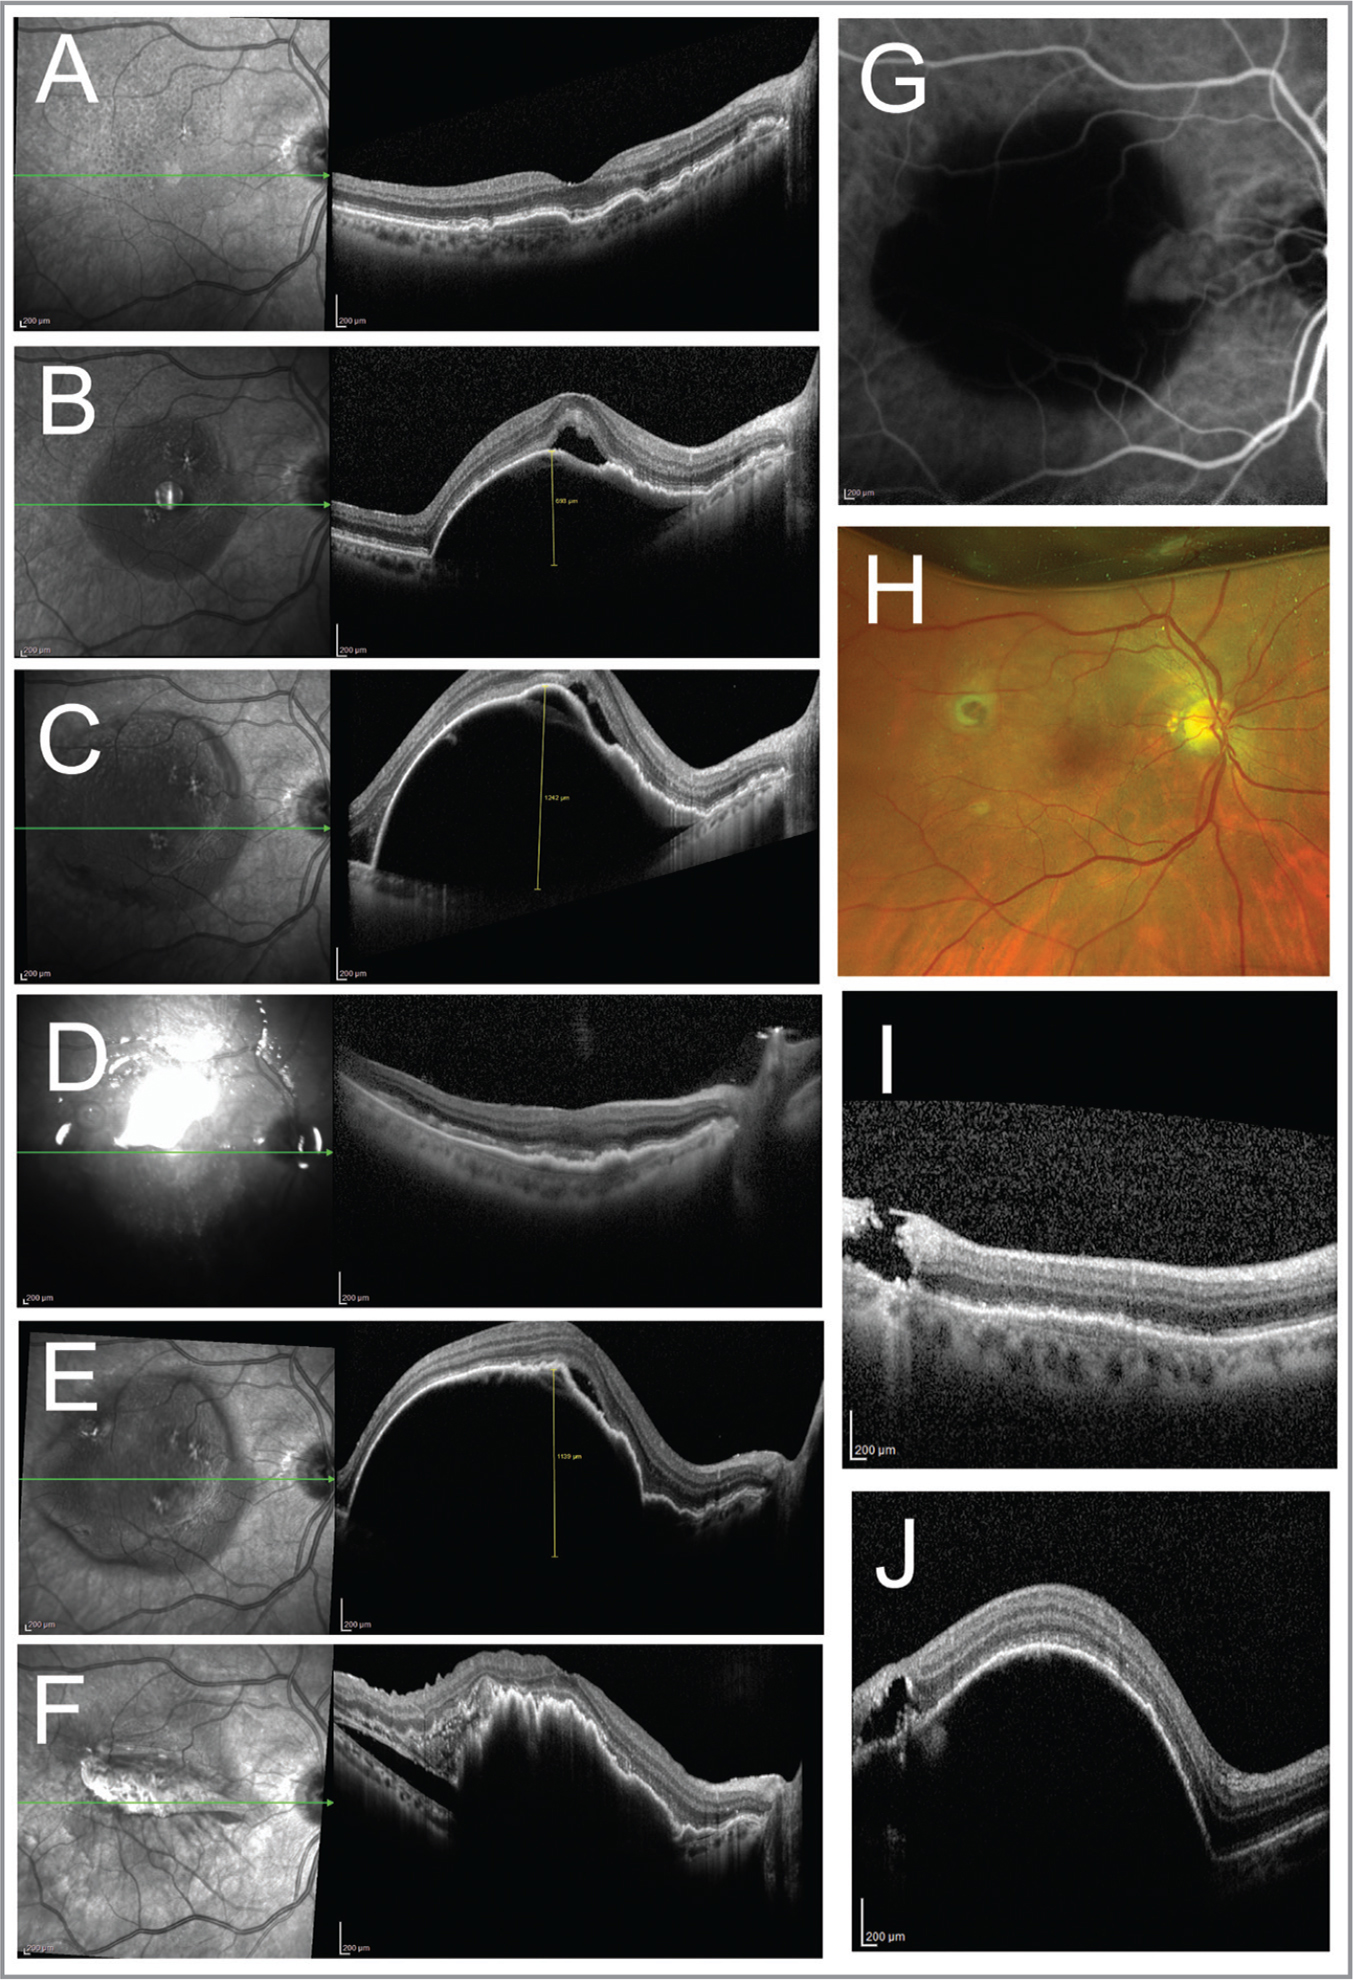 Spectral-domain optical coherence tomography (SD-OCT) foveal raster scans and corresponding infrared (IR) registration images of the right eye before (A–C) and after (D–F) surgical drainage of the pigment epithelial detachment (PED). After first presentation of subretinal fluid from conversion to wet age-related macular degeneration (A), a serous PED gradually enlarged despite aggressive conventional treatment (B). The PED grew to a maximum height of 1,242 μm (C). Postoperative day 1 SD-OCT demonstrated flattening of the PED and eccentric macular hole at the retinotomy site (D). The PED recurred 4 weeks postoperatively, and despite continued conventional treatment RPE tear without subretinal hemorrhage developed (F). Indocyanine green angiography demonstrated nasal location of the choroidal neovascularization under the papillomacular bundle precluded laser photocoagulation. False color fundus image at 1 week postoperatively showing flattened PED and superotemporal retinotomy (G). SD-OCT raster scans and IR registration images through the retinotomy in the right eye (I, J) demonstrate closure was associated with recurrence of PED.